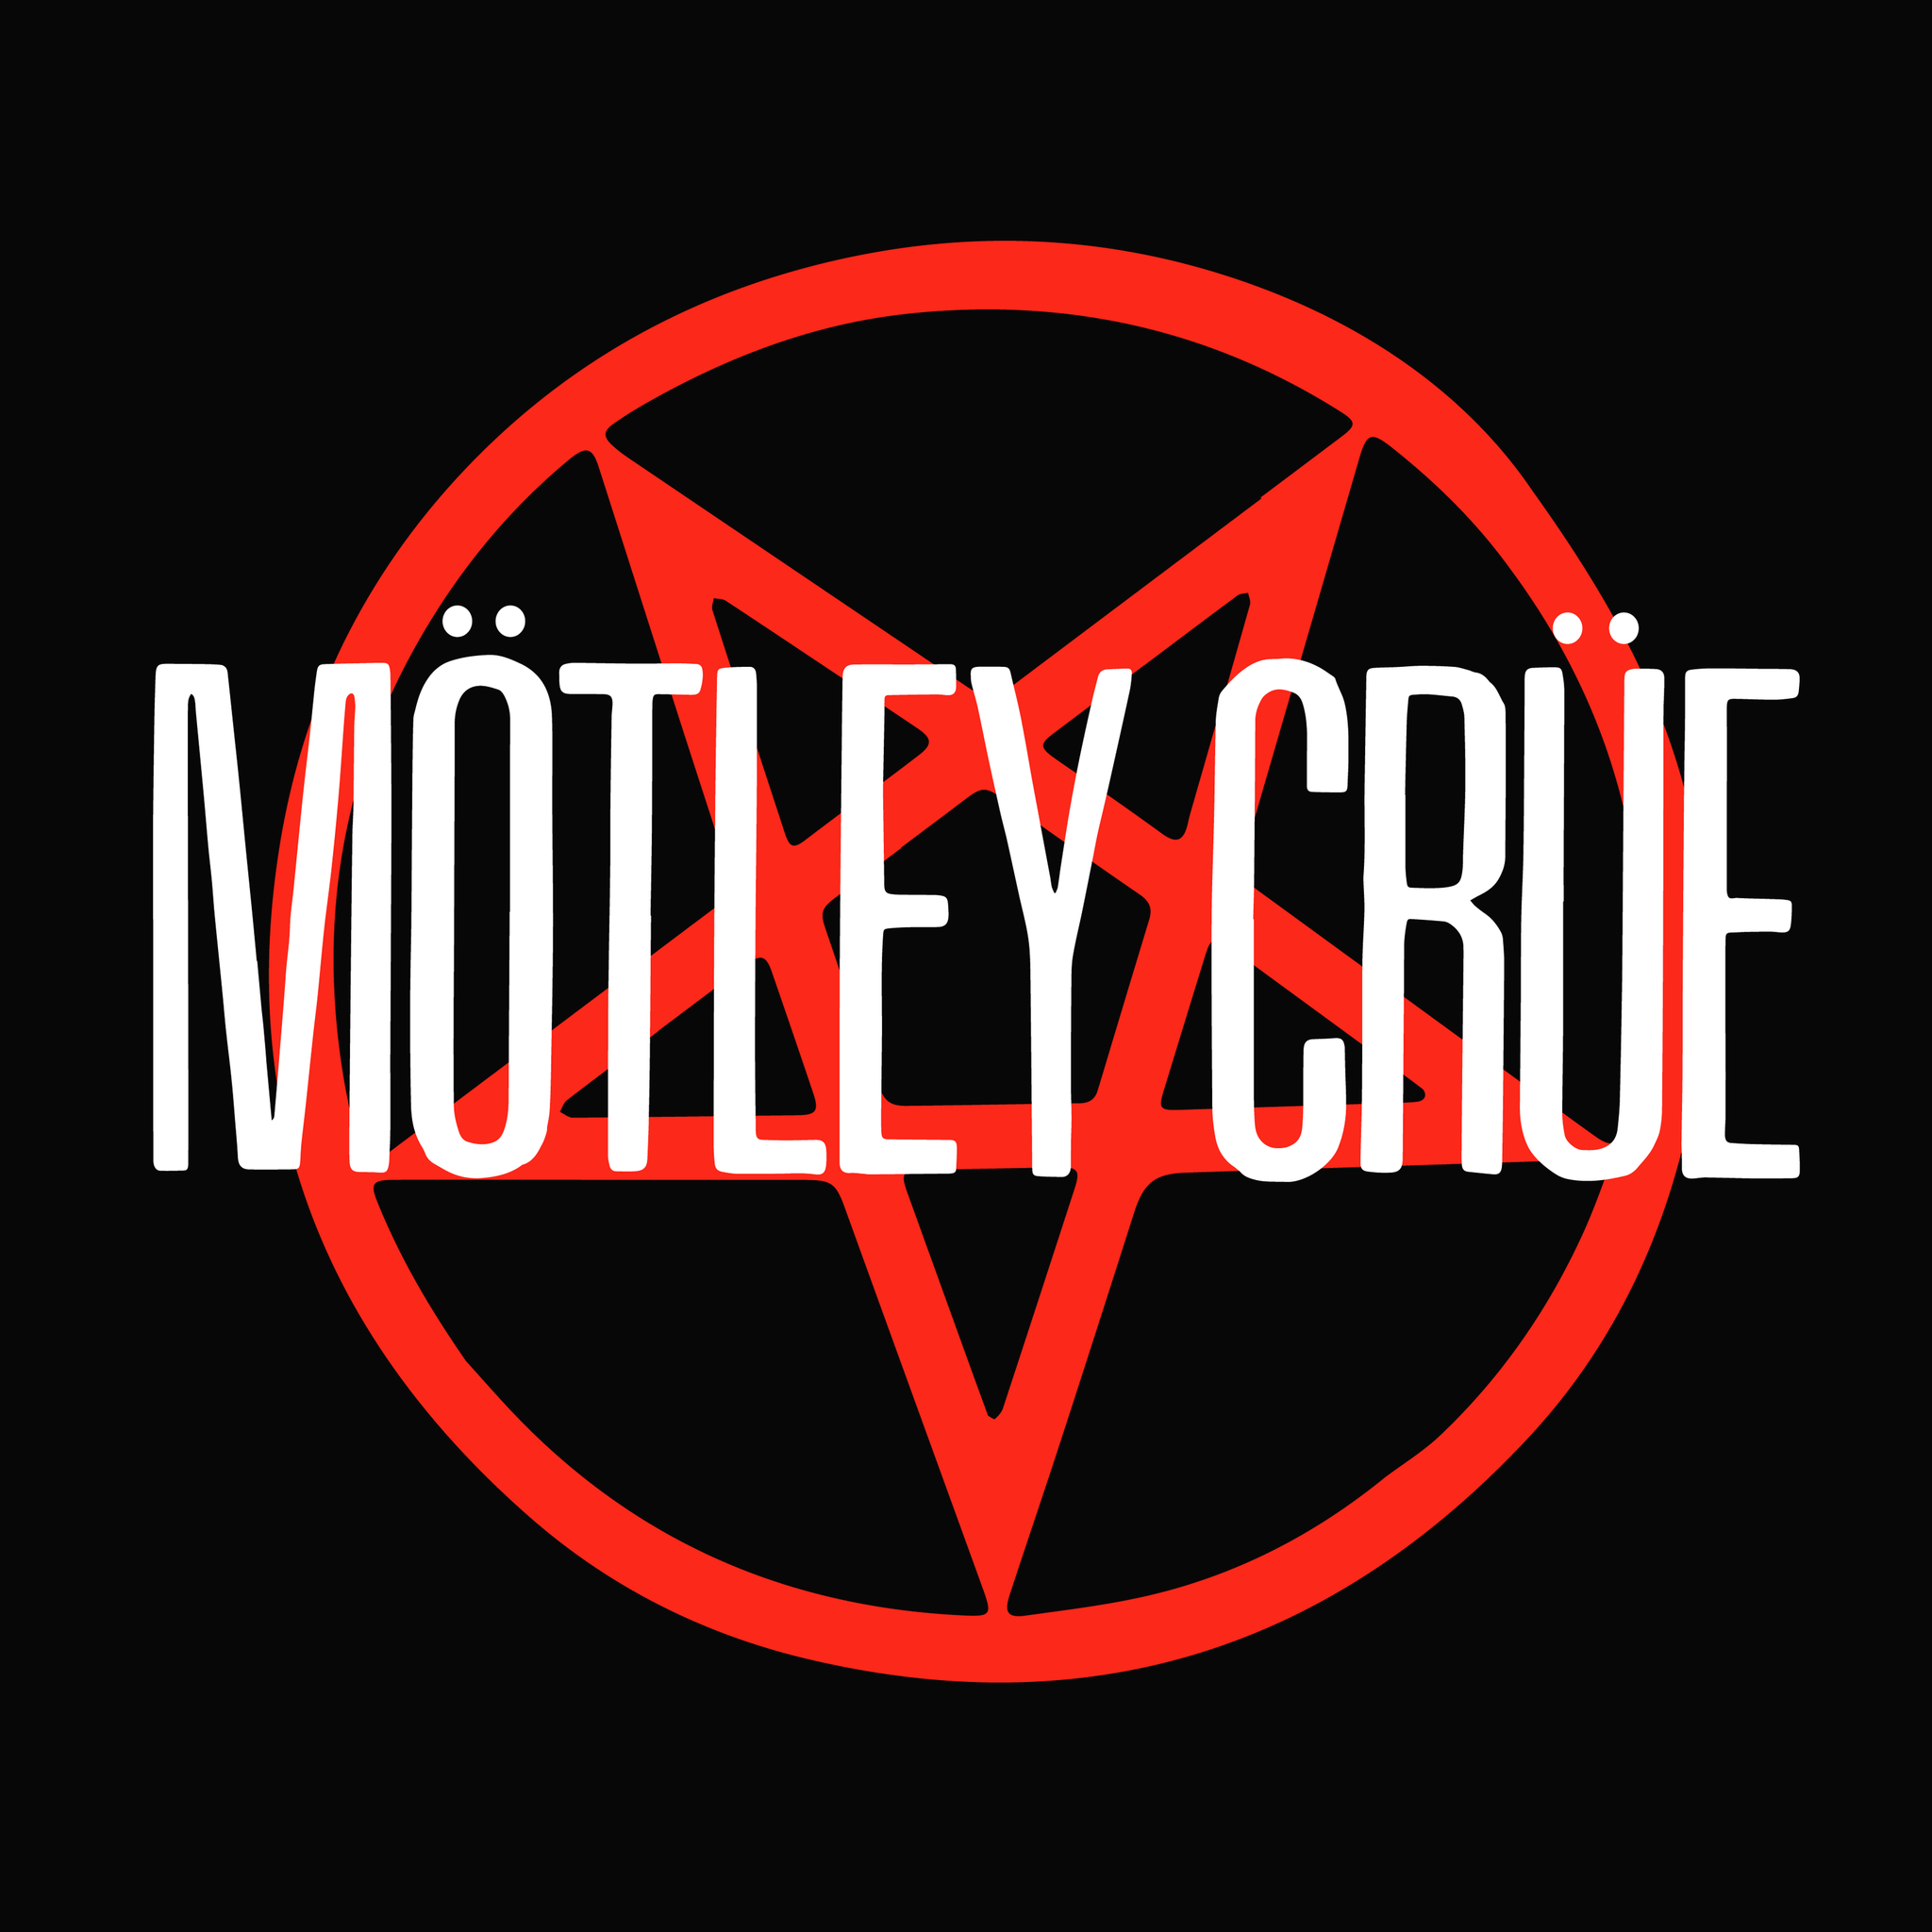 MOTLEY CRUE svg, MOTLEY CRUE, MOTLEY CRUE png, funny quotes svg, png, eps, dxf file